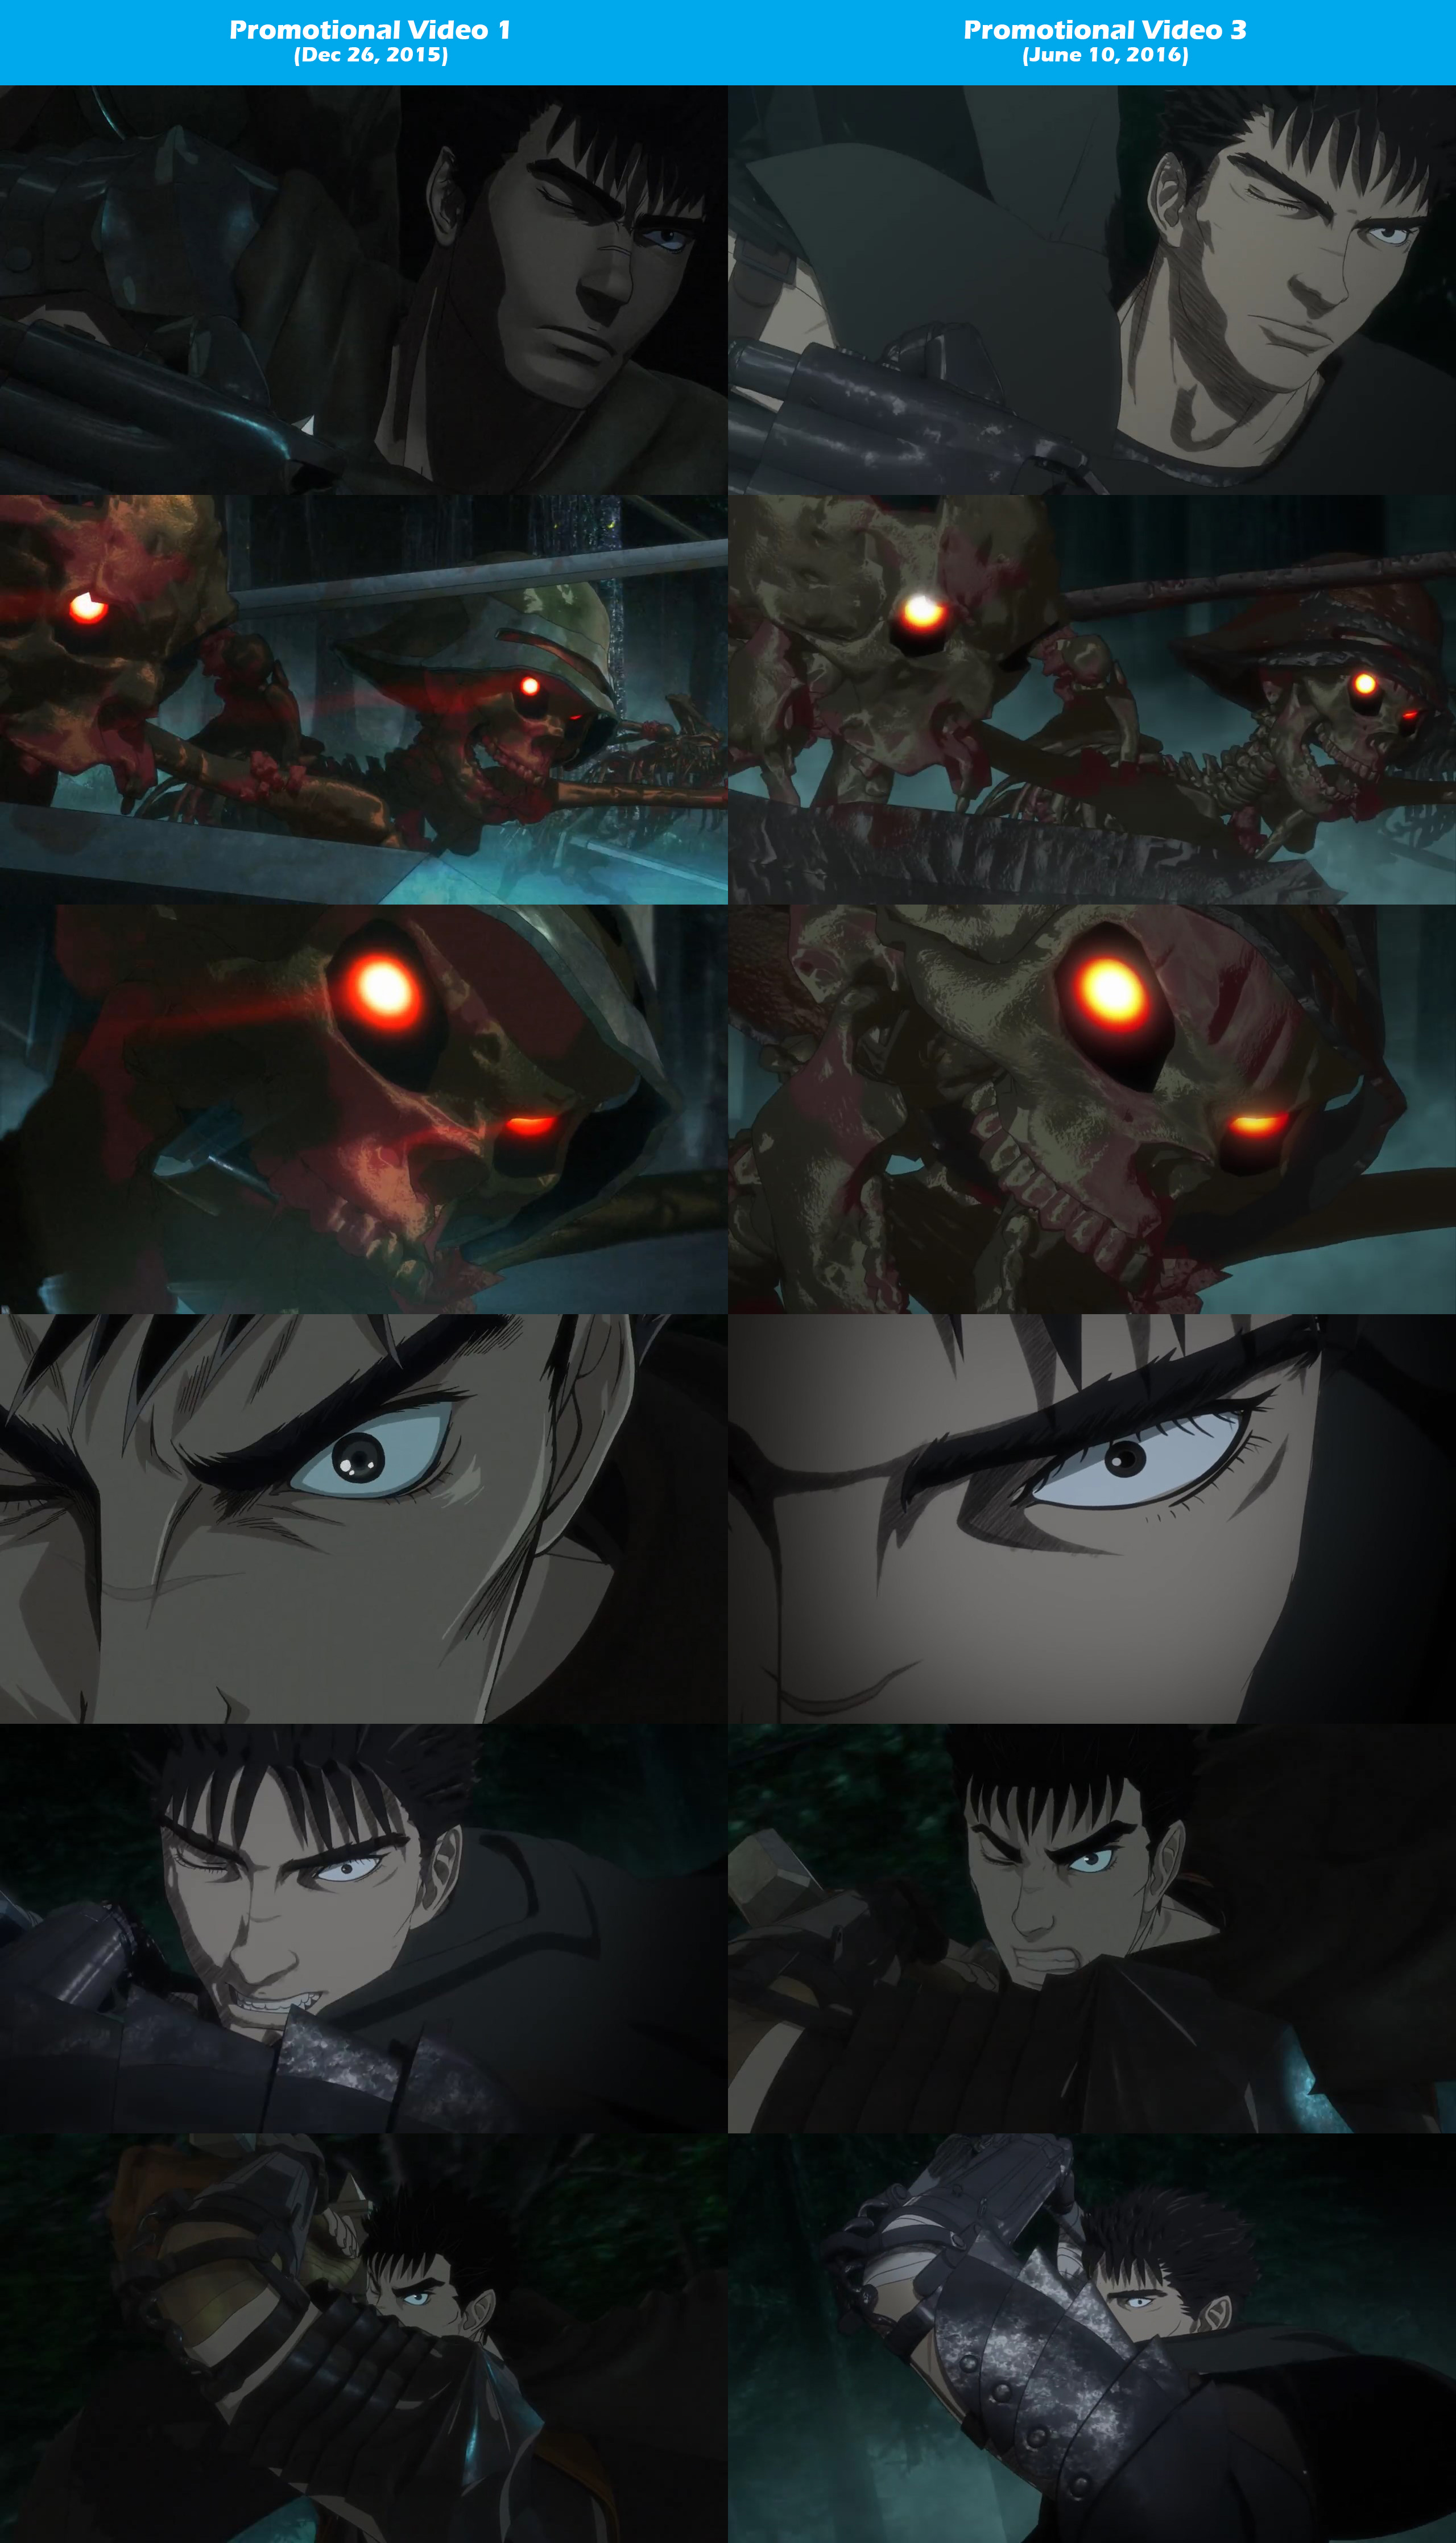 2016-Berserk-Anime-PV-1-vs-PV-3-Comparison-2